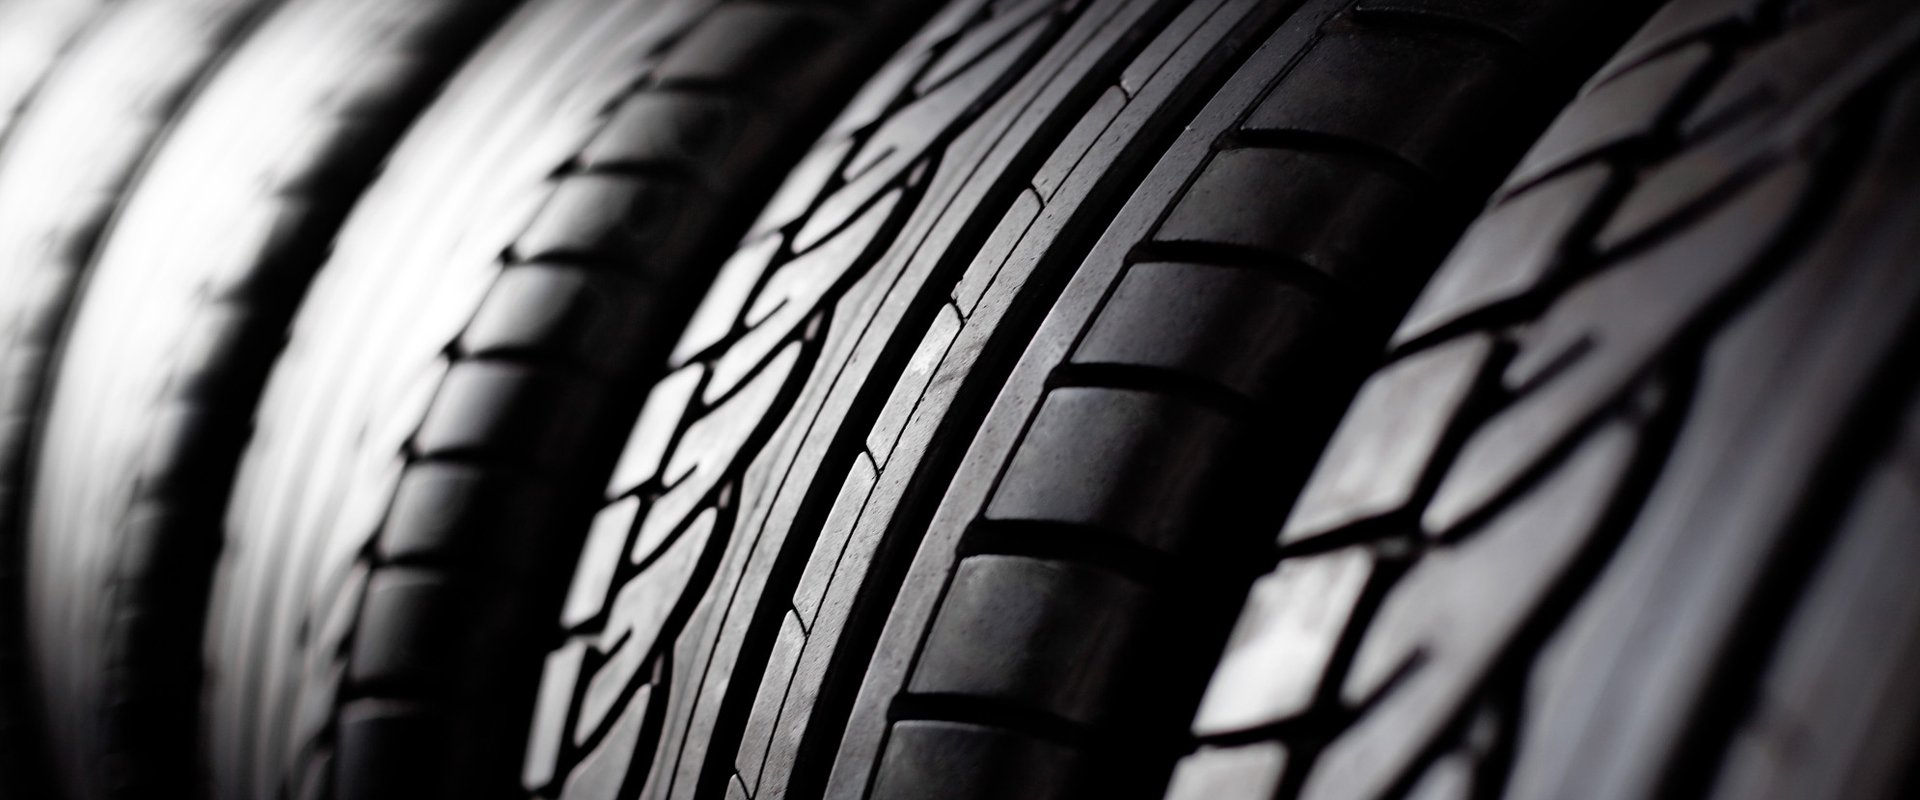 close up image of tyres